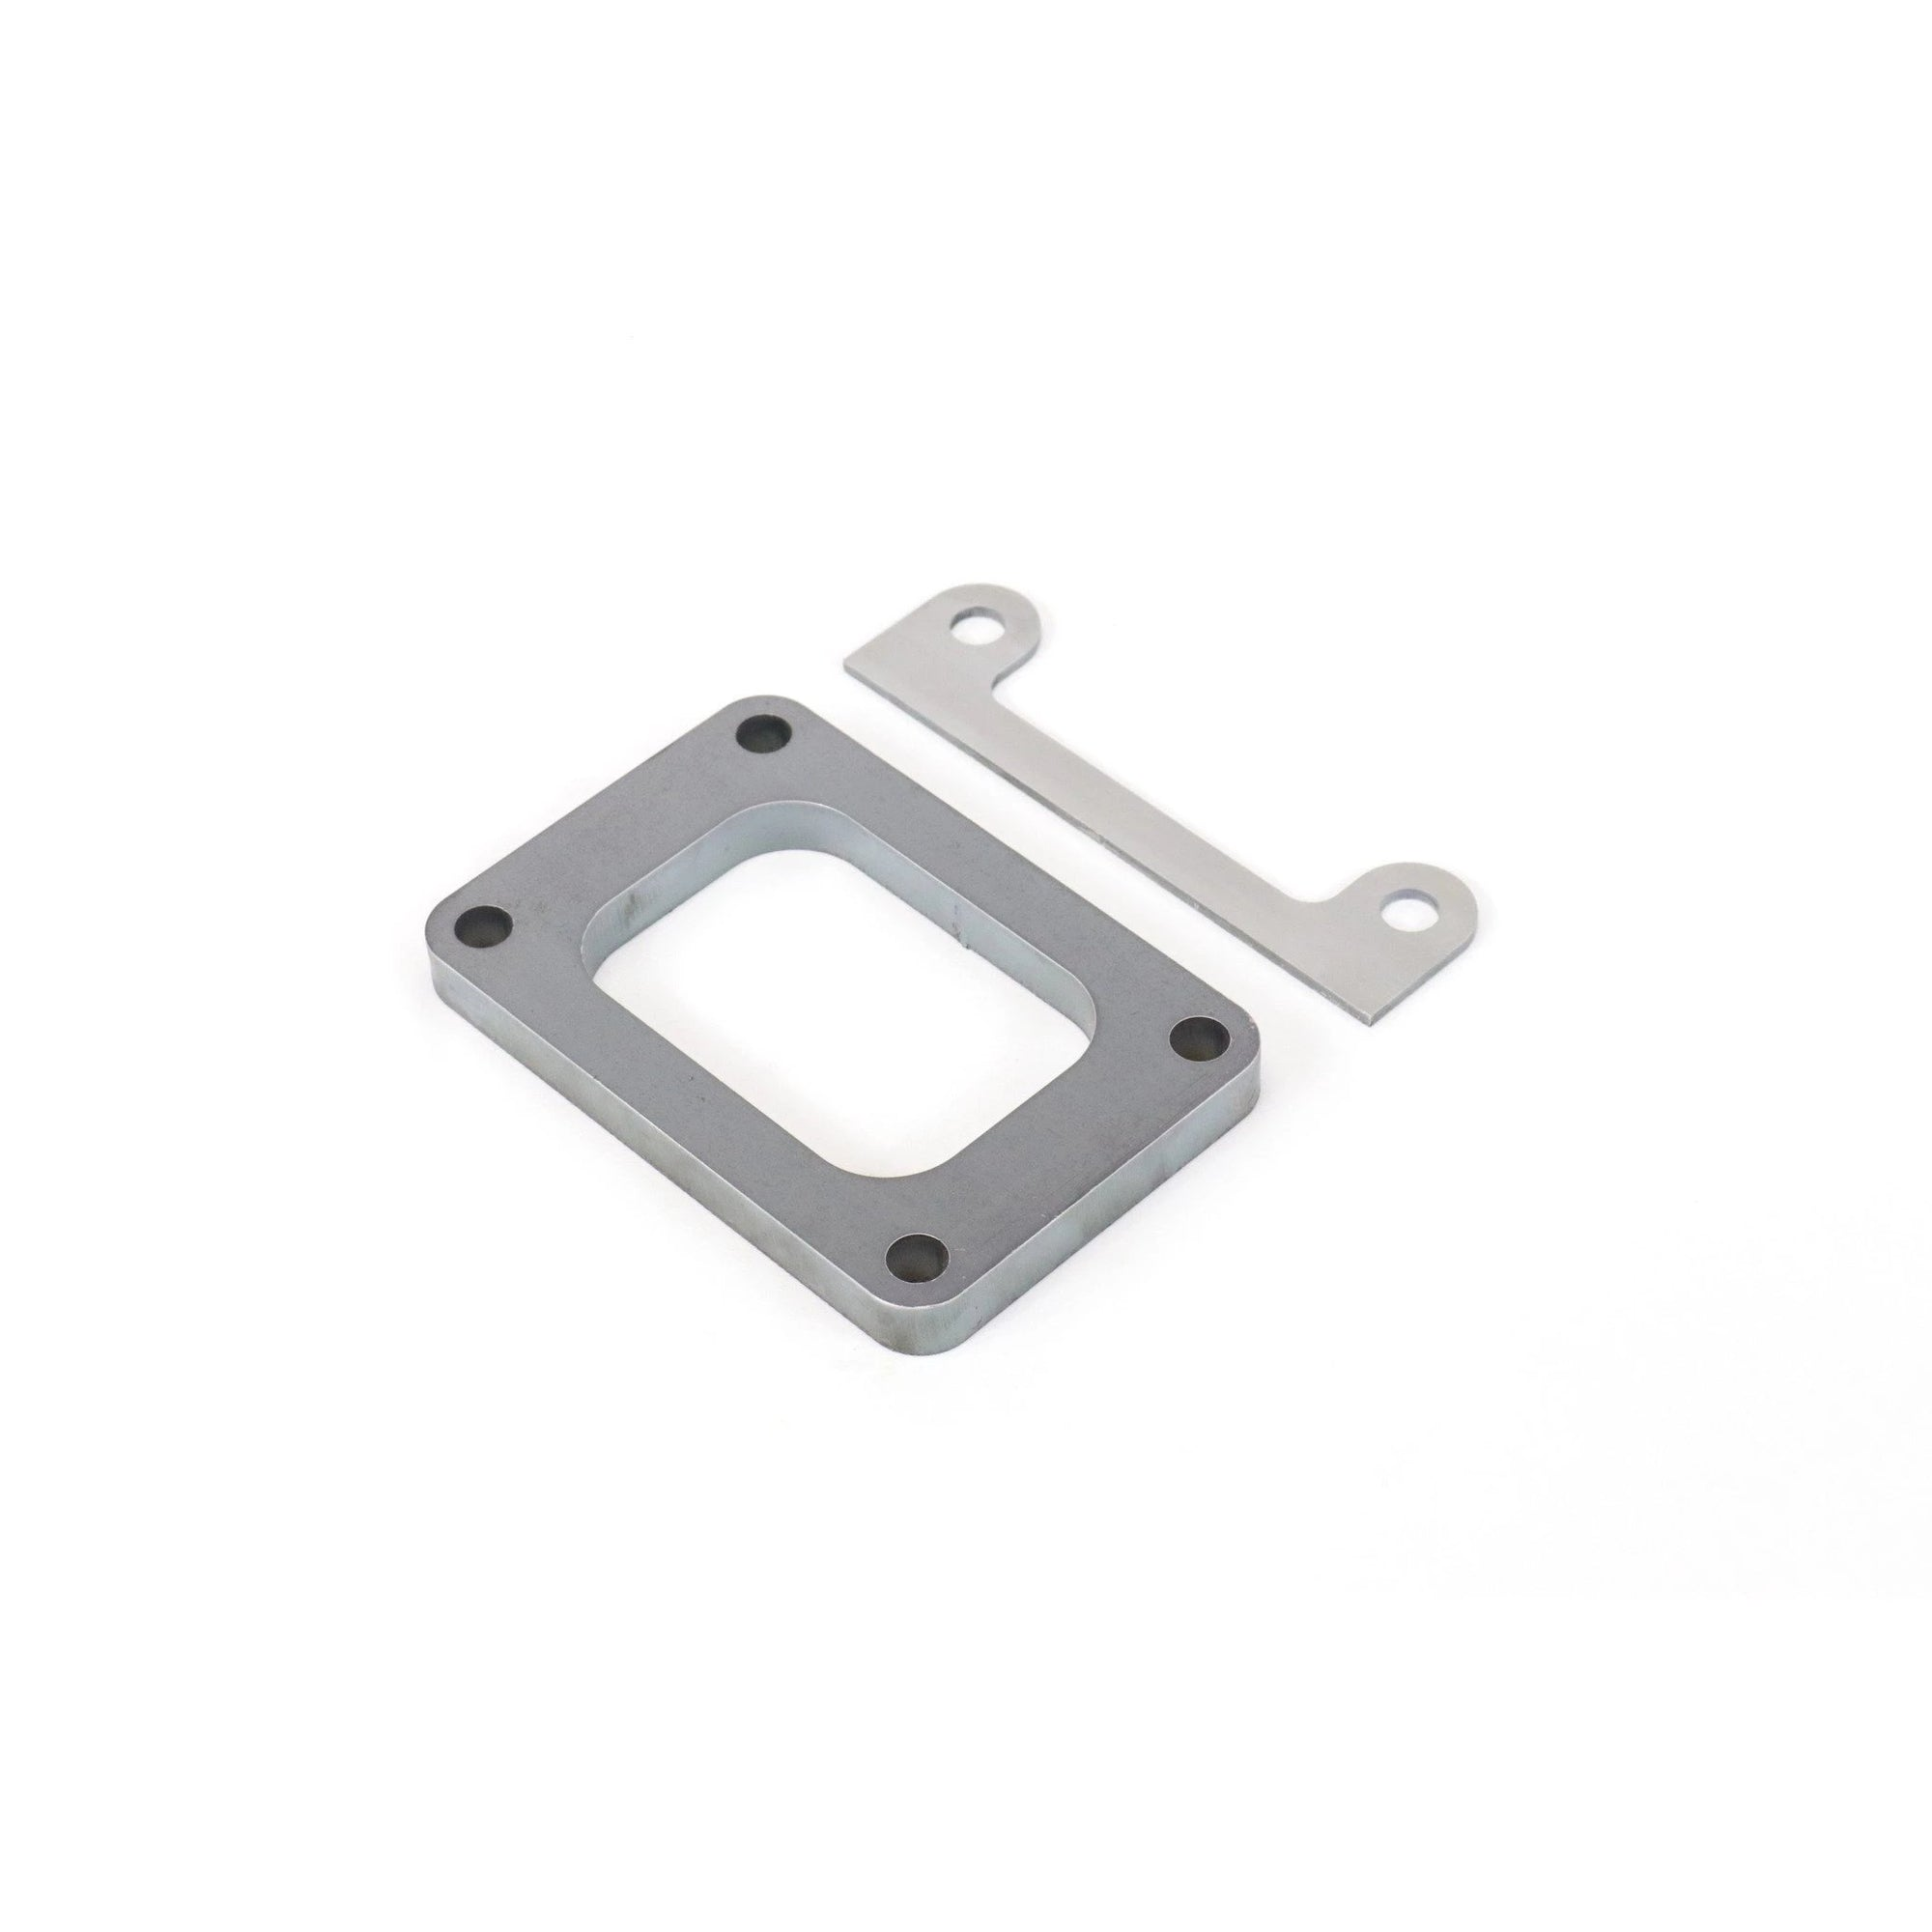 "Mild Steel T5 Turbo Flange Open Inlet 1/2"" thickness w/ weld on mounting bracket-Motion Raceworks-Motion Raceworks"